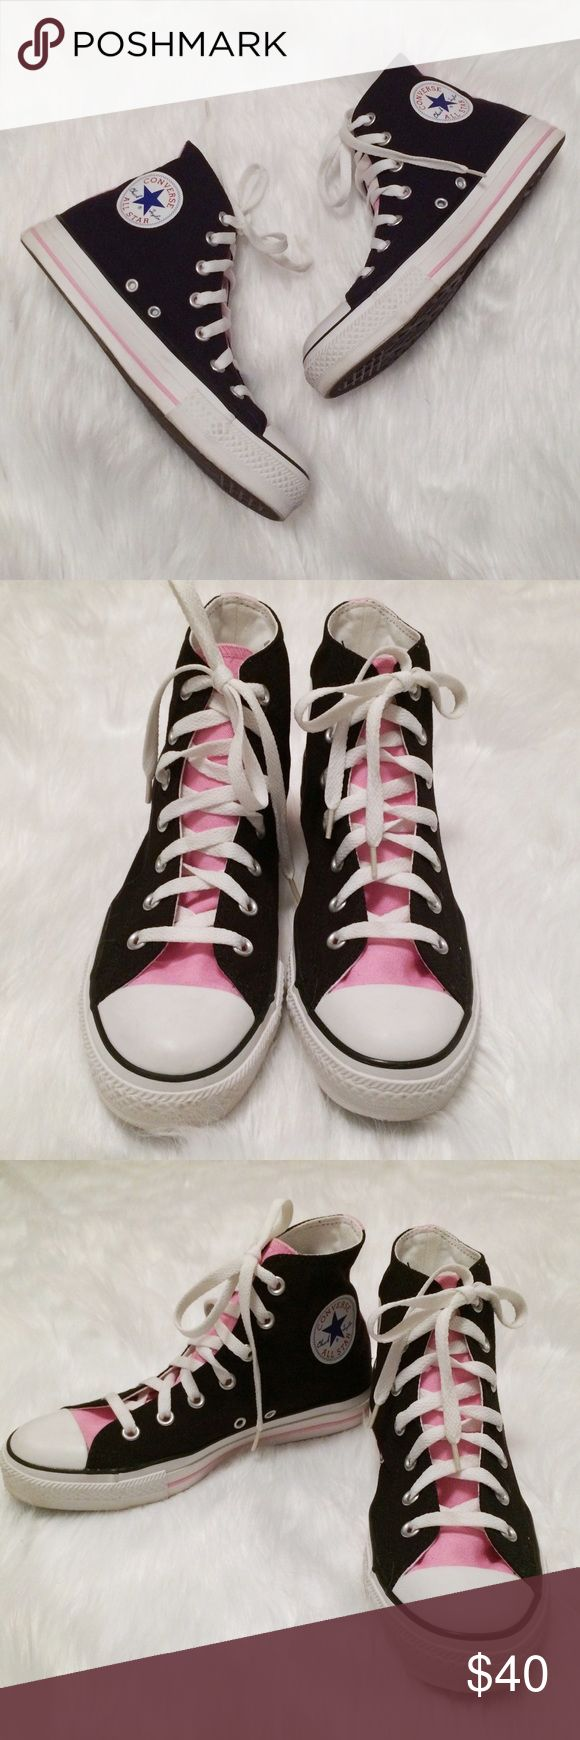 Converse All Star Chuck Taylor High Top Sneakers Chuck Taylors are unisex shoes, so while these show size 6 (men's) on the sole, the inside shows both size 6 for men and size 8 for women. Chucks tend to run a half size larger than your usual athletic shoe size. These are in perfect condition with no signs of wear. Thank you for looking!  Sales tax of 8.75% will be added for residents of New York State Converse Shoes Sneakers